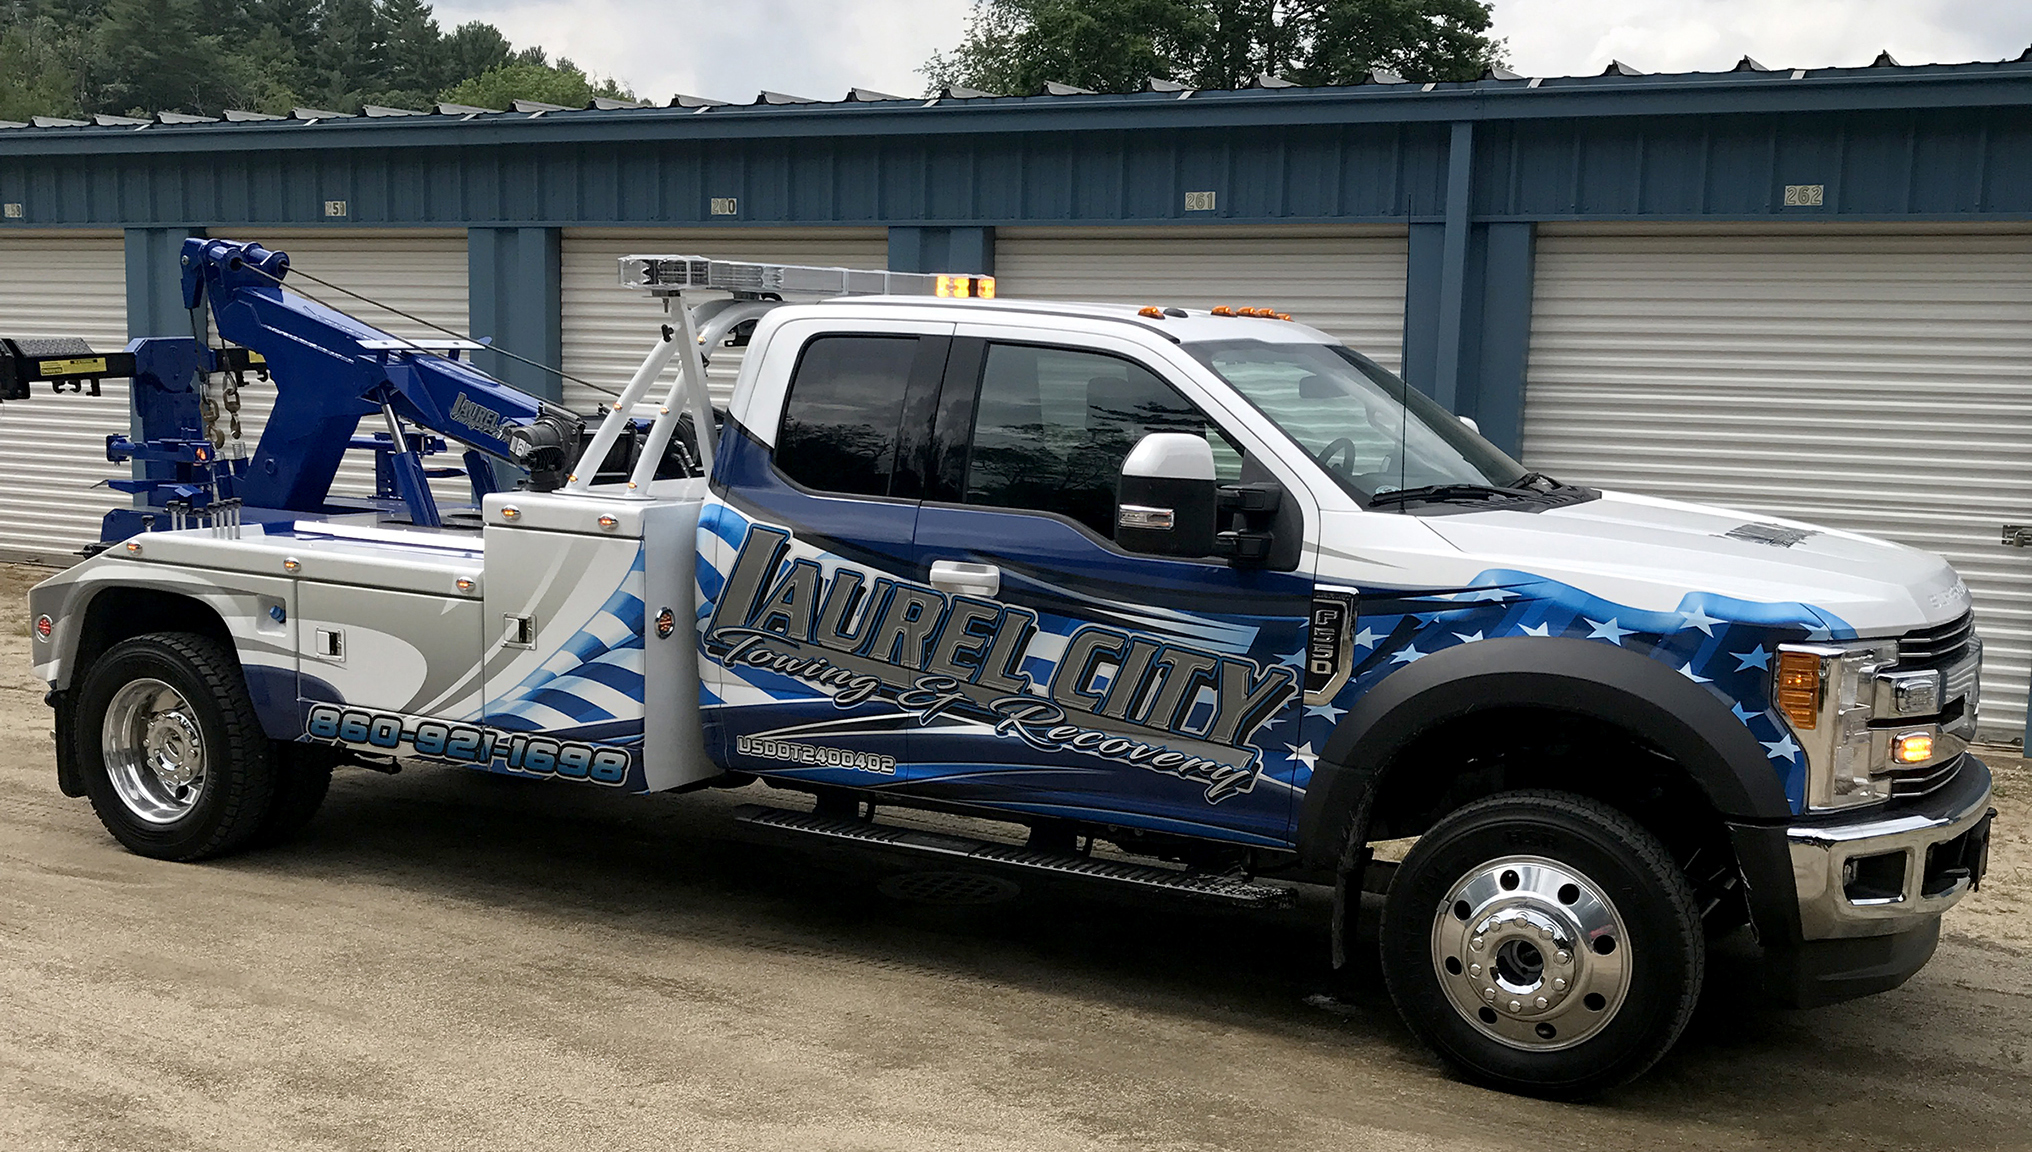 Laurel City Towing & Recovery LLC